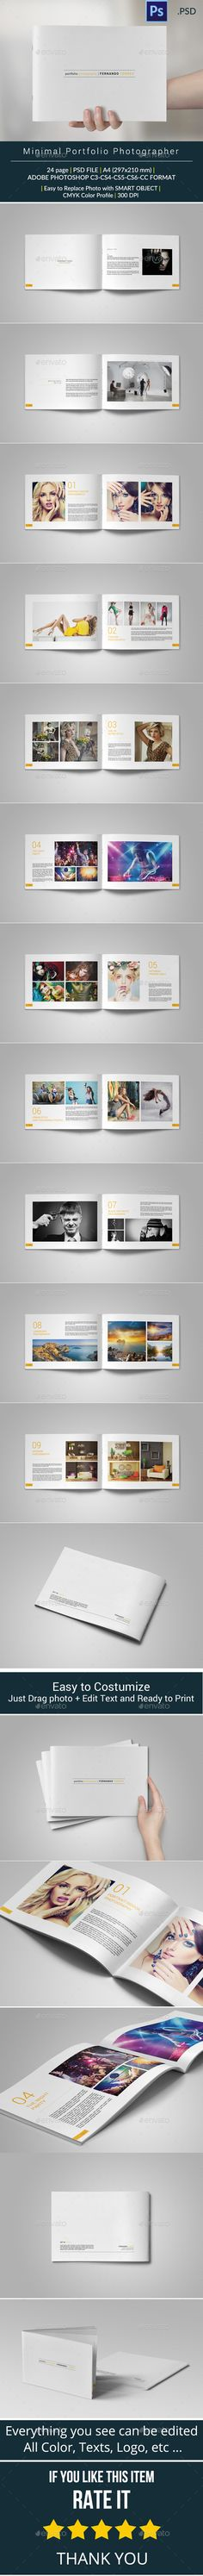 Minimal Portfolio Brochure Template #design Download: http://graphicriver.net/item/minimal-portfolio/10058402?ref=ksioks